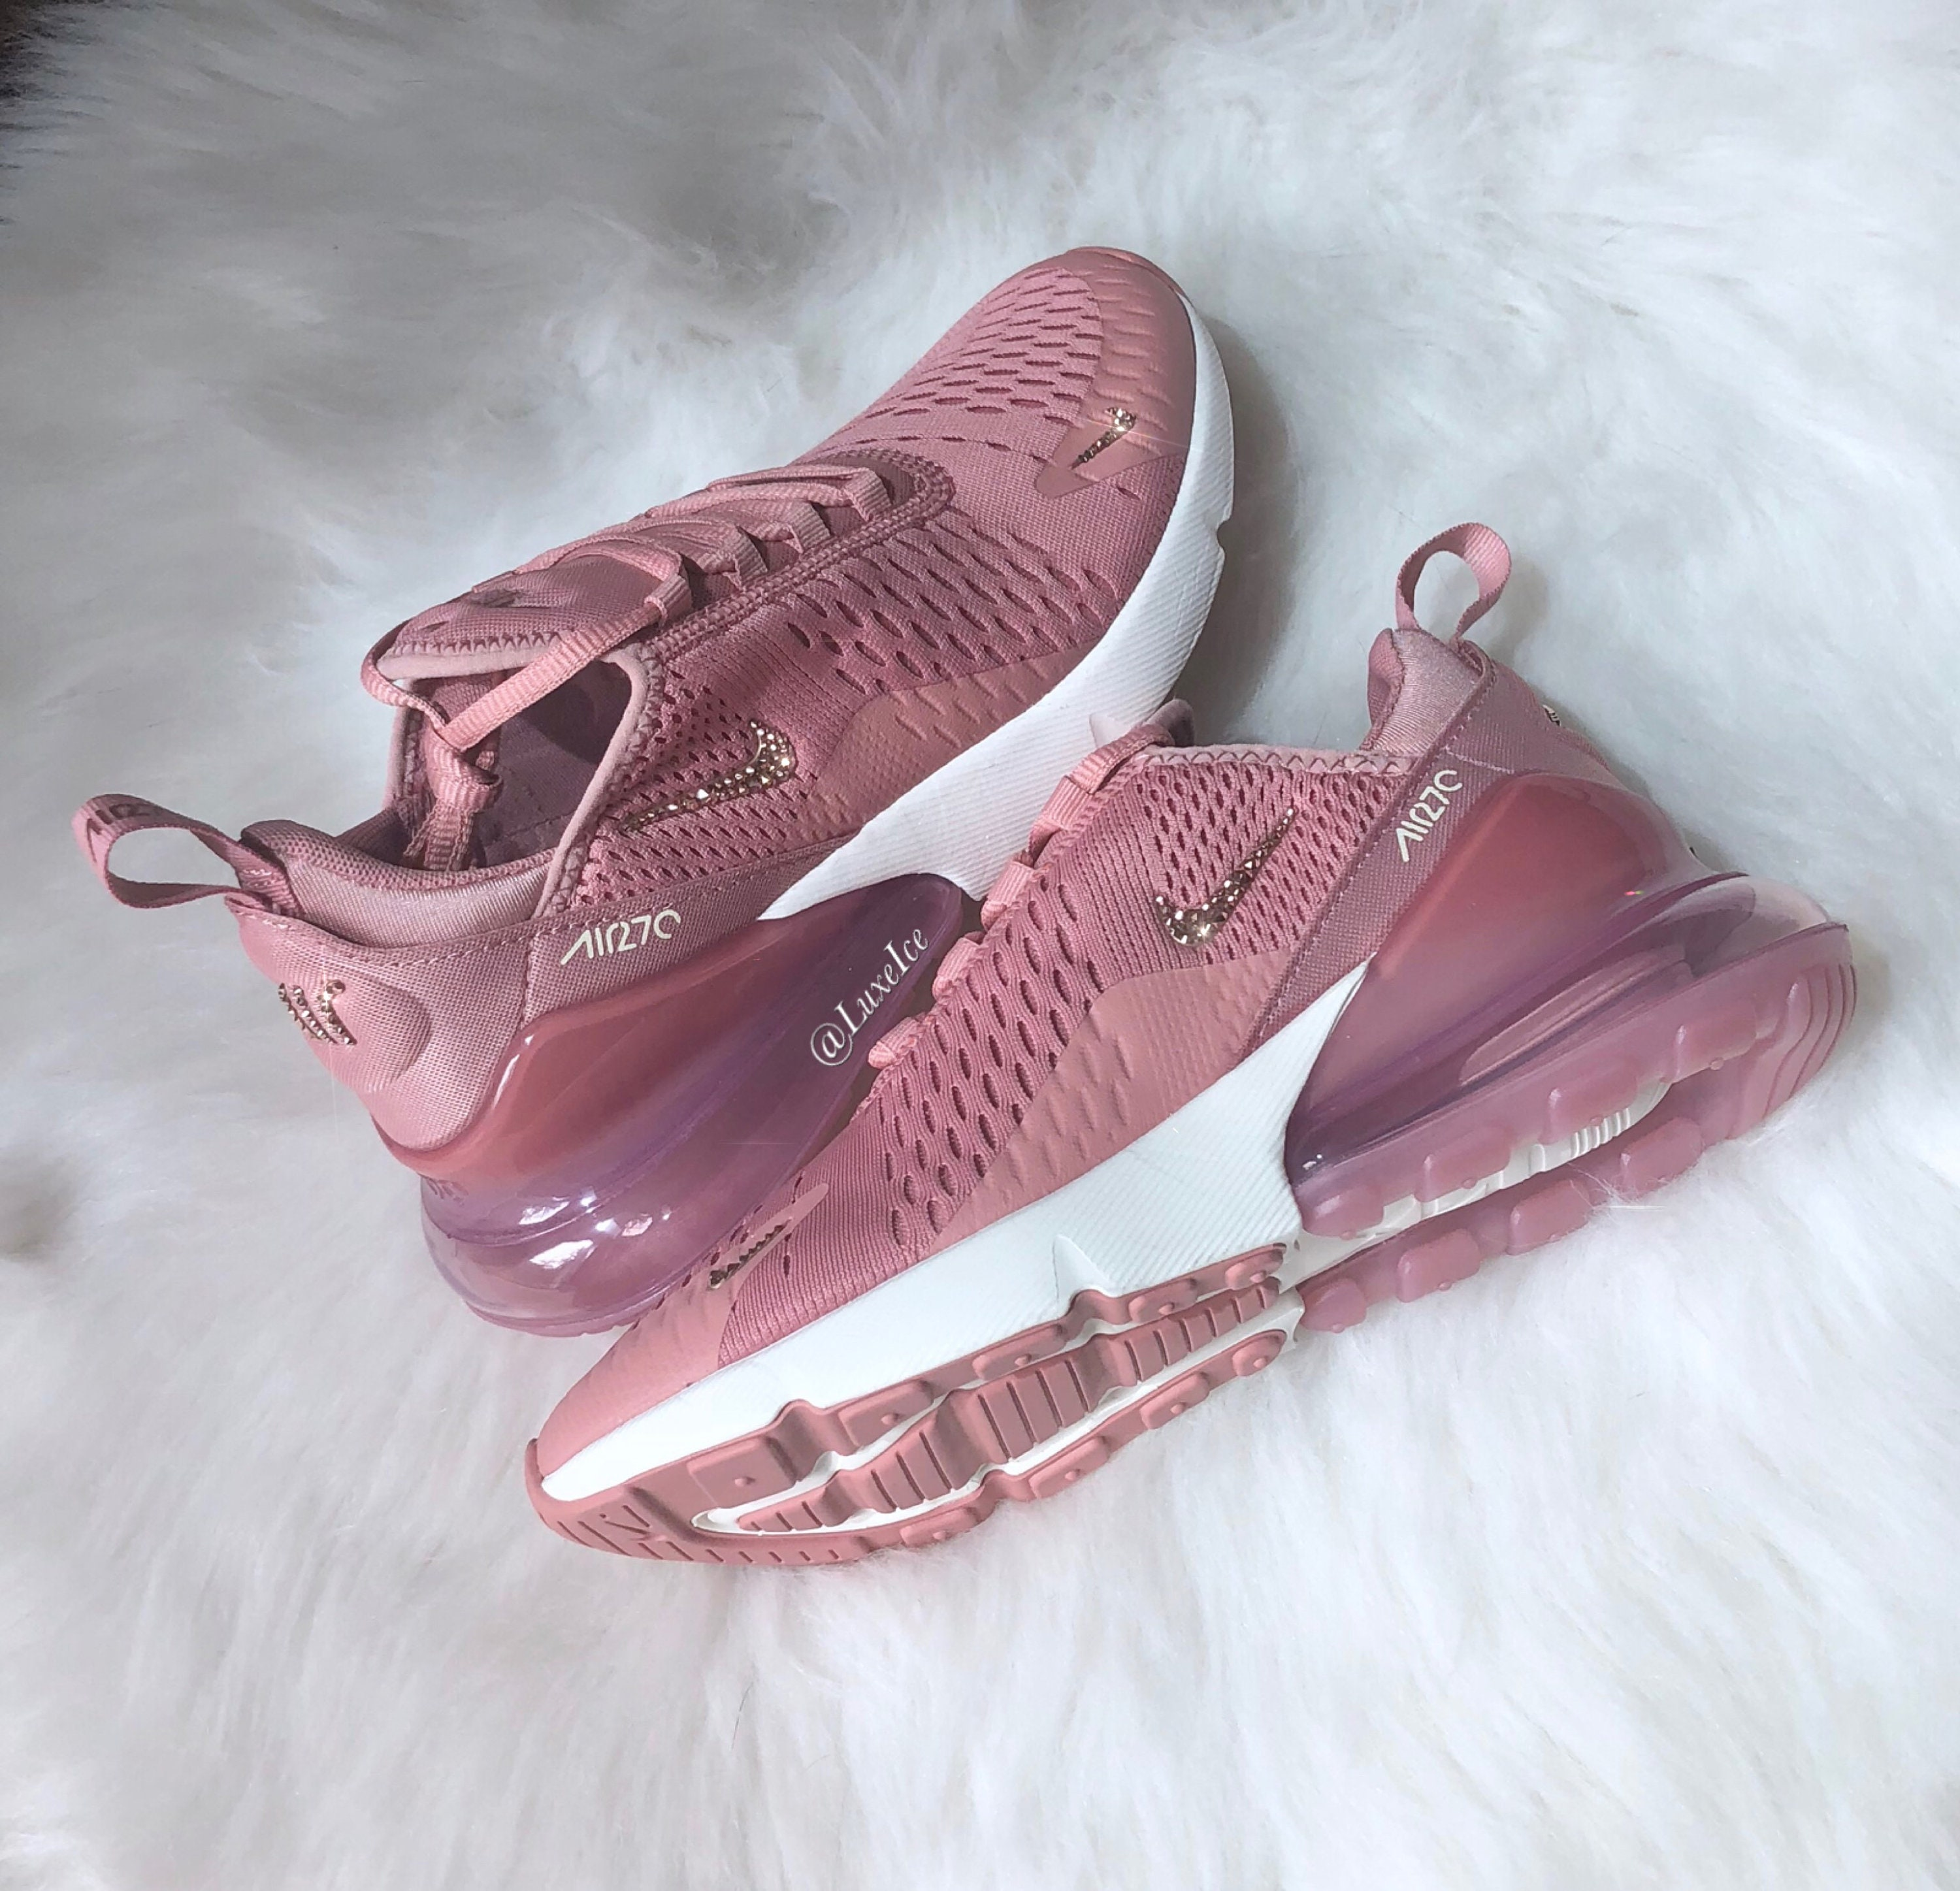 8a326d6dfa7 ... Nike air max rose gold metallic and  great quality 35462 2af2d image 0  image 1 .. ...